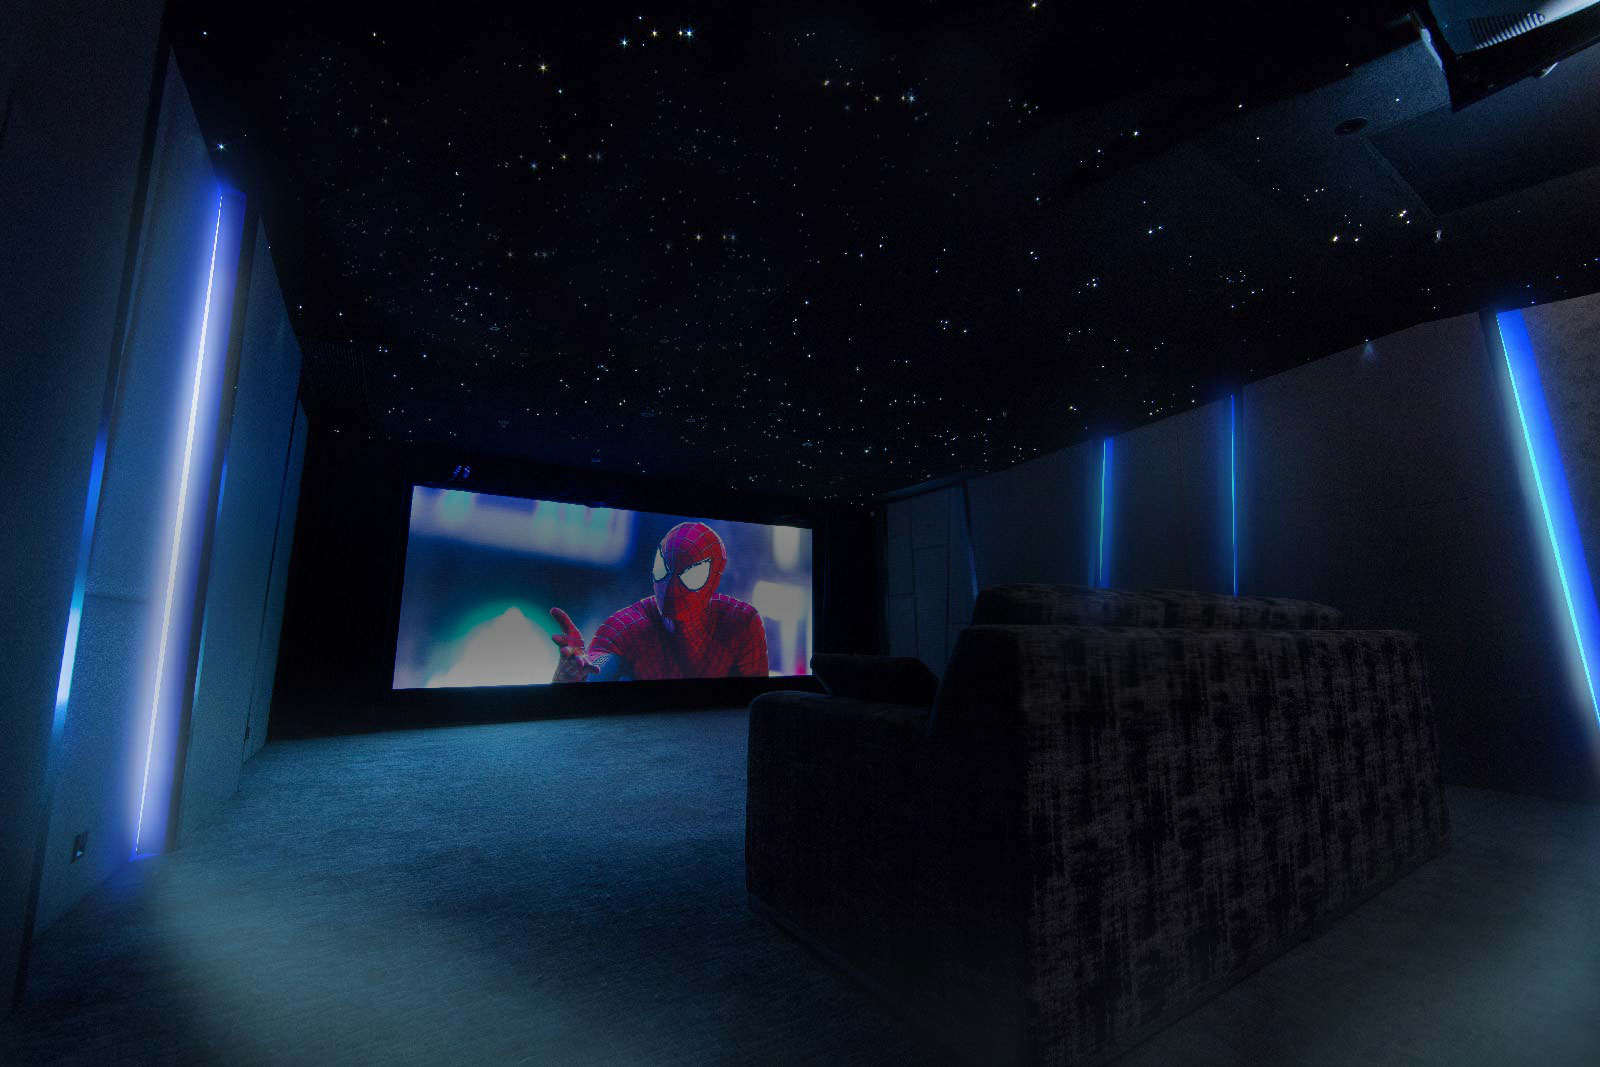 Our Home Theatre Room is designed to NC30 with every construction detail as close to professional standard as possible. To minimize room acoustic distortion and ensure adequate sound-proofing, acoustic treatments including absorption, diffusion and isolation systems have been applied to the walls and ceilings so that audience at each dedicated seating position in the theatre should be able to enjoy crystal clear audio playback at its optimal performance.